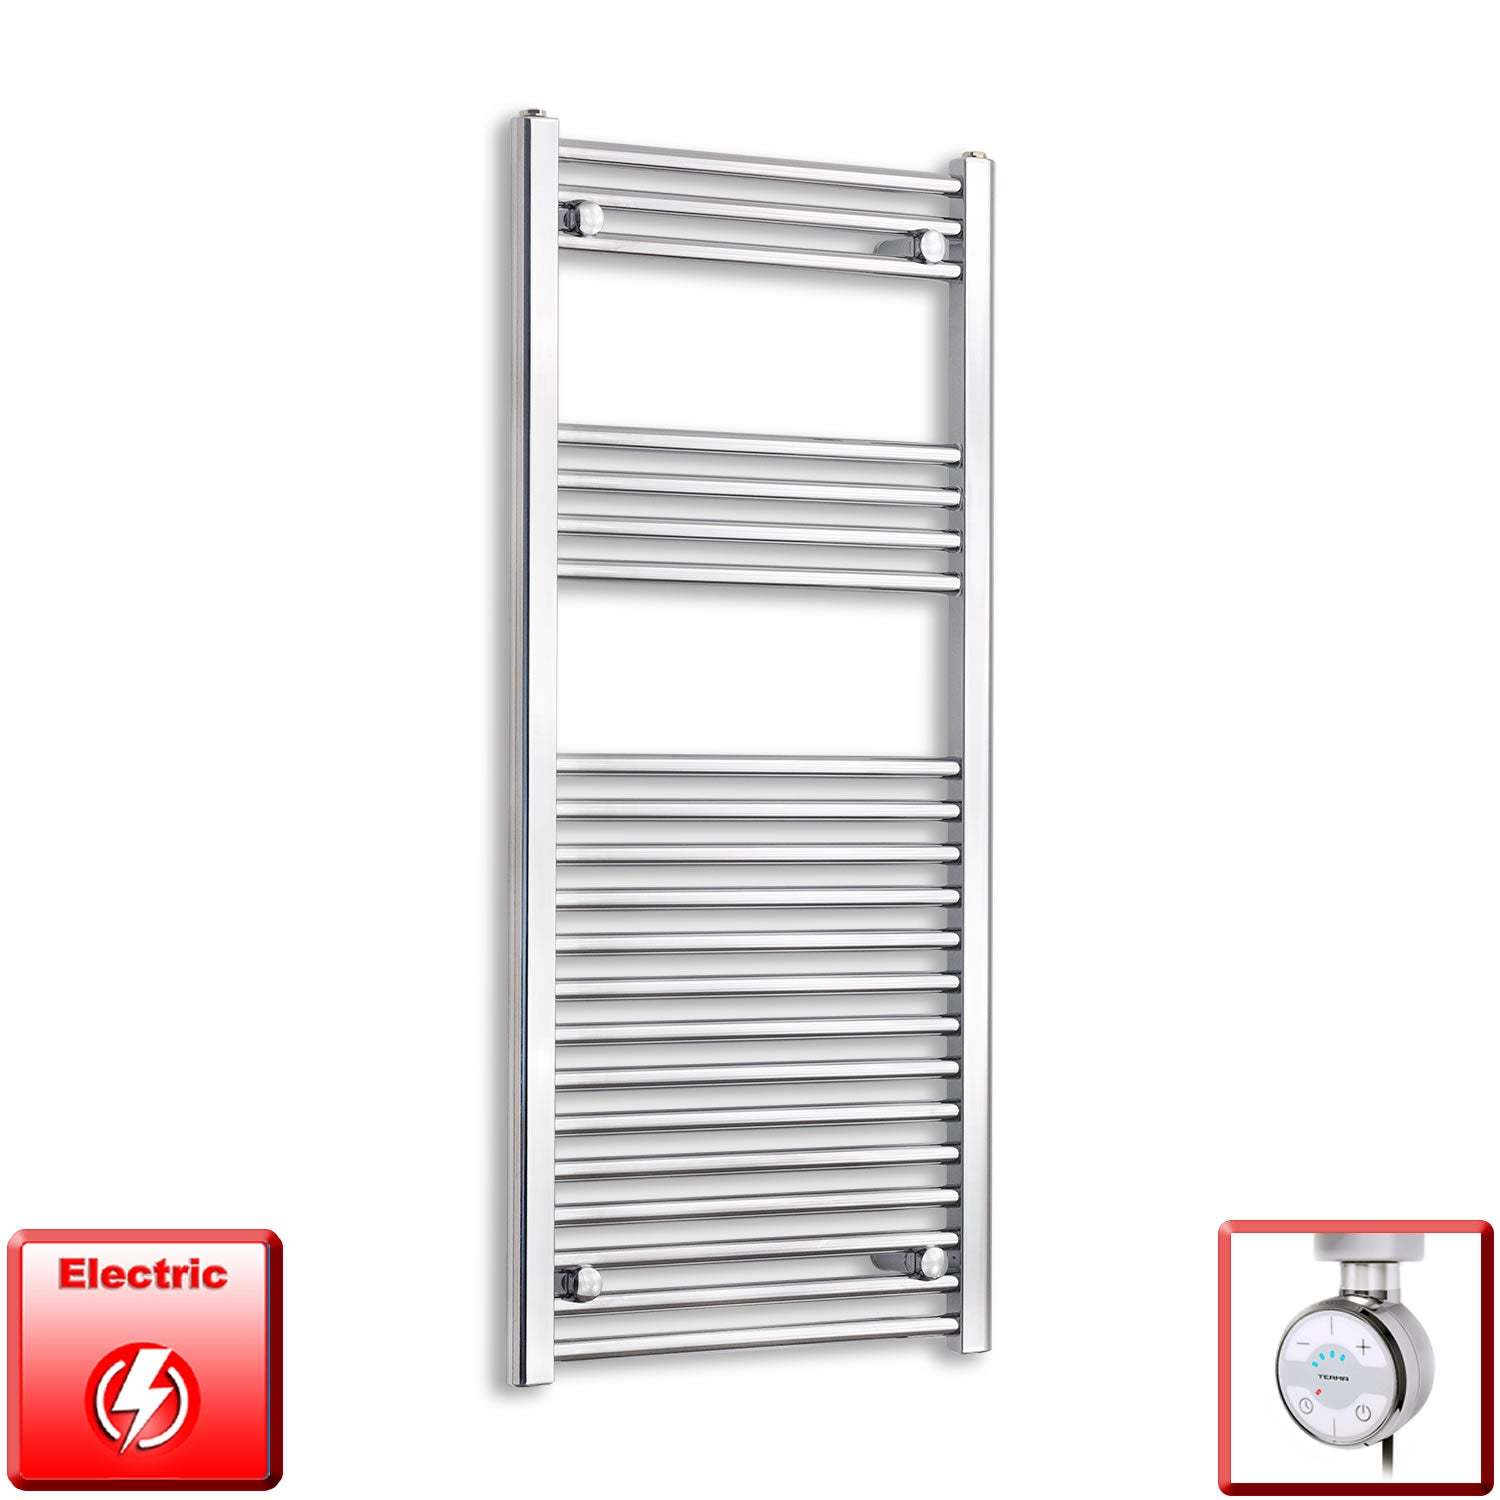 450mm Wide 1100mm High Pre-Filled Black Electric Towel Rail Radiator With Thermostatic MOA Element